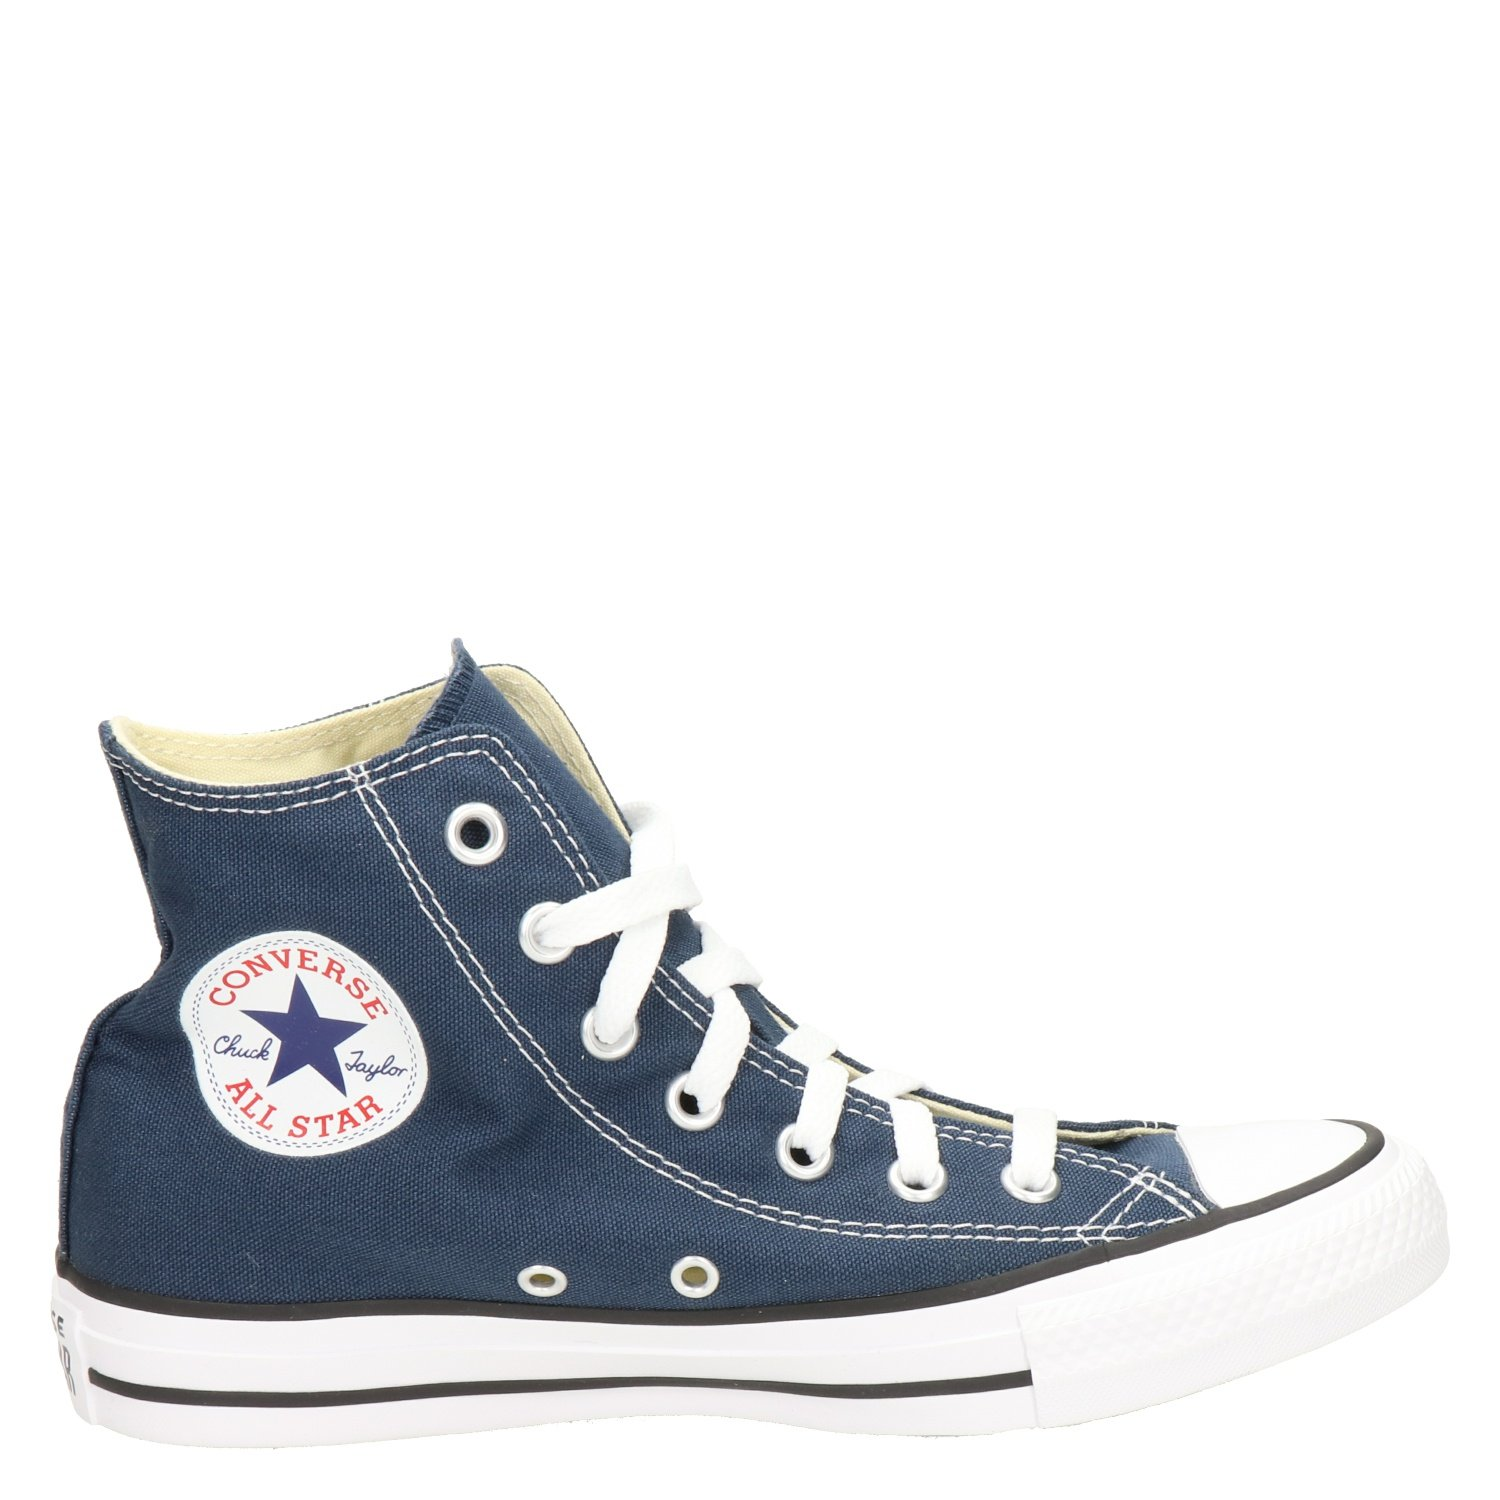 0549dc16a03 Converse All Star Hi unisex hoge sneakers blauw